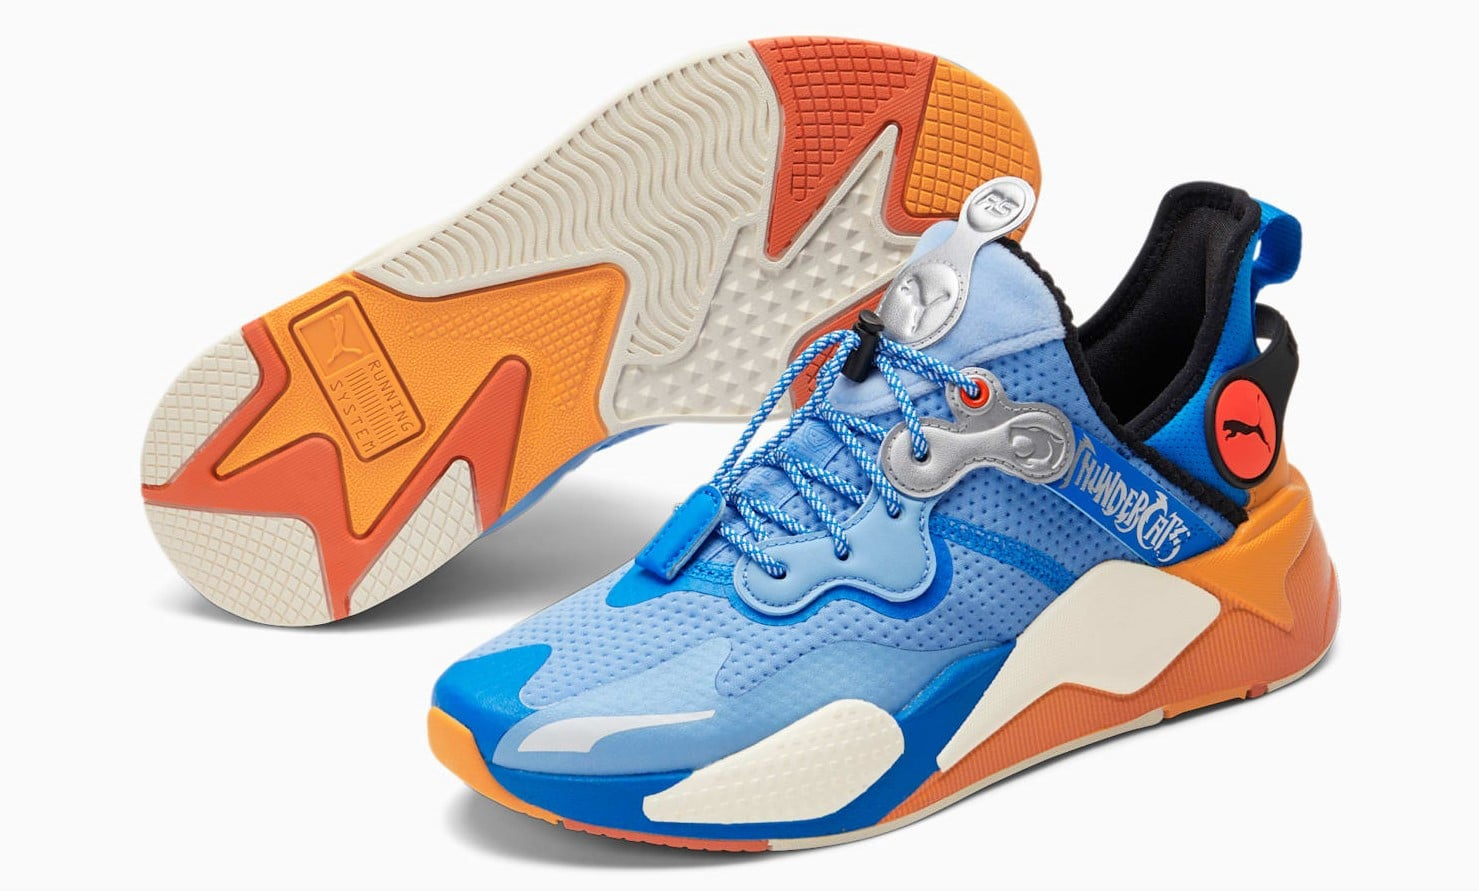 Puma x ThunderCats collection is now available 12